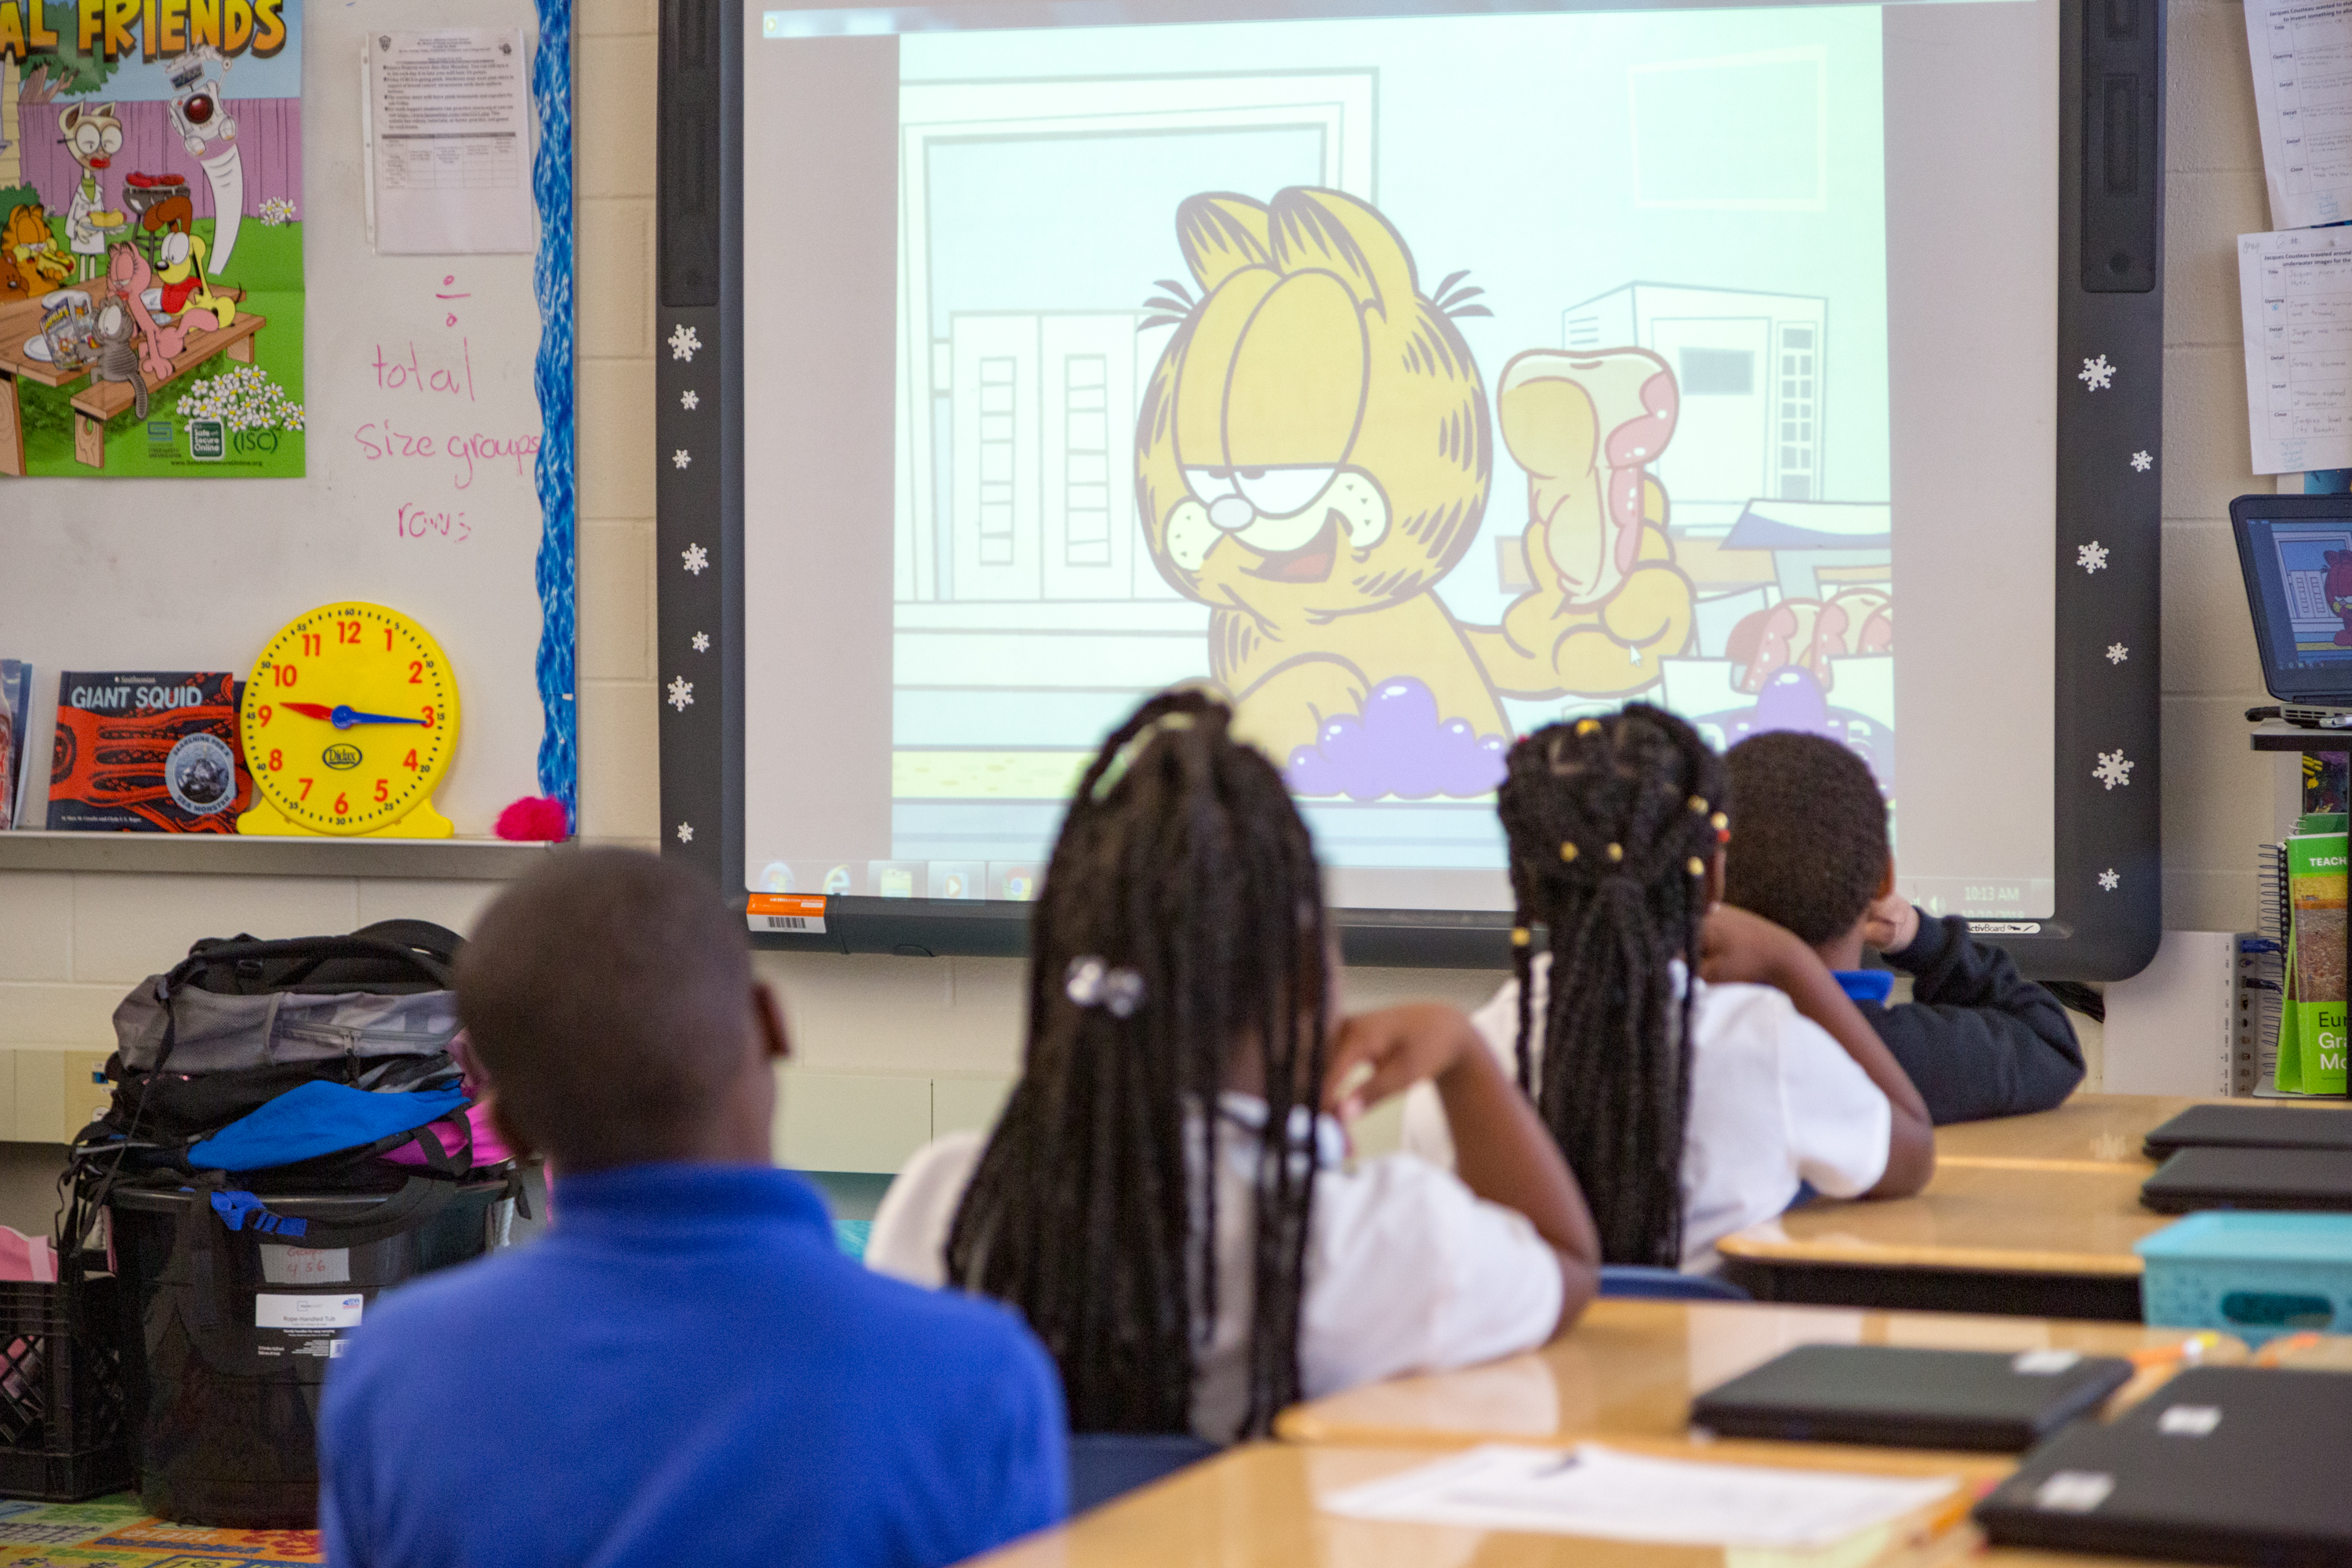 Center for Cyber Safety and Education uses Garfield to teach lesson about internet safety to children